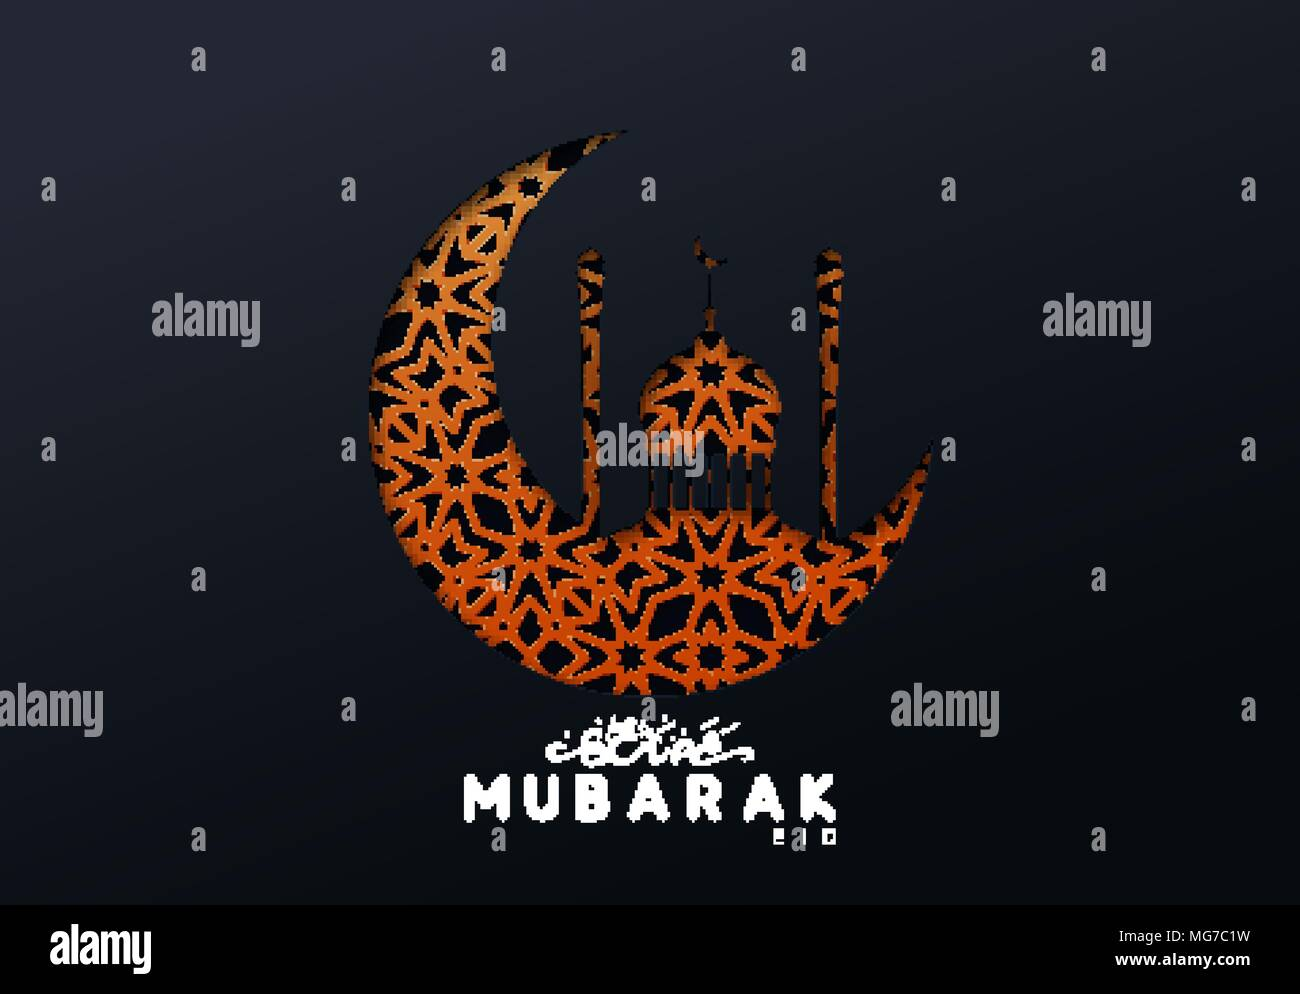 Eid mubarak vector background calligraphic text of ramadan kareem eid mubarak vector background calligraphic text of ramadan kareem creative design greeting card banner poster traditional islamic holy holiday m4hsunfo